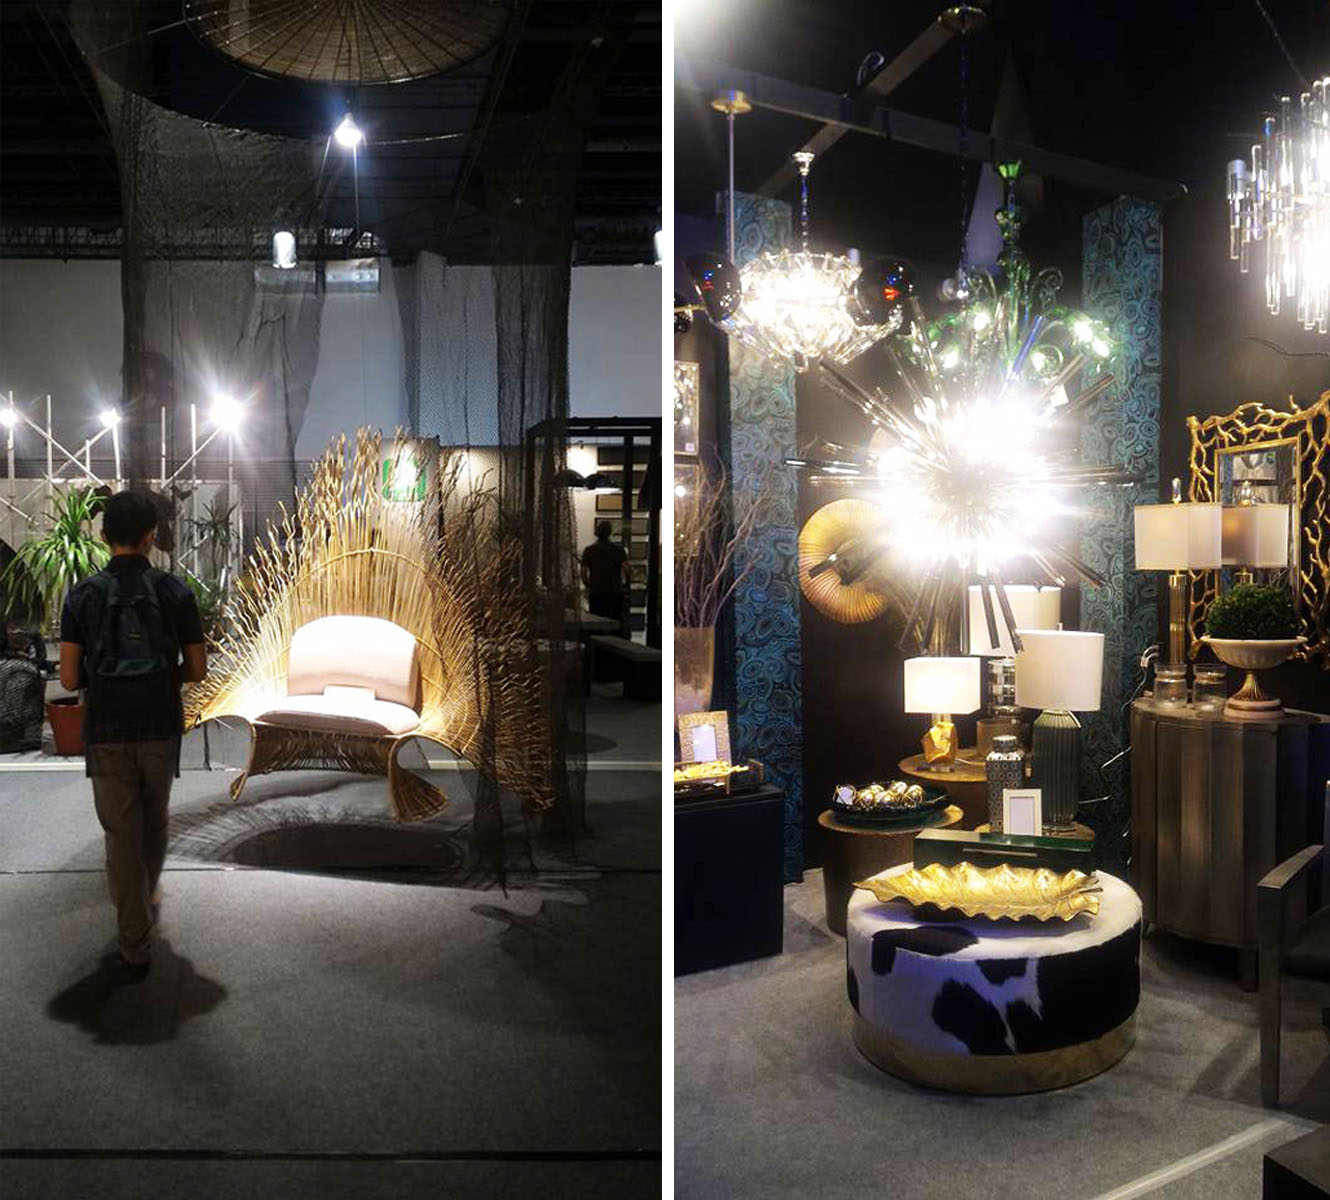 Now, I Just Went There As A Designer, My Profession, But I Still Want To  Share The Experience So Hereu0027s A Photo Diary... Interior U0026 Design Manila ...